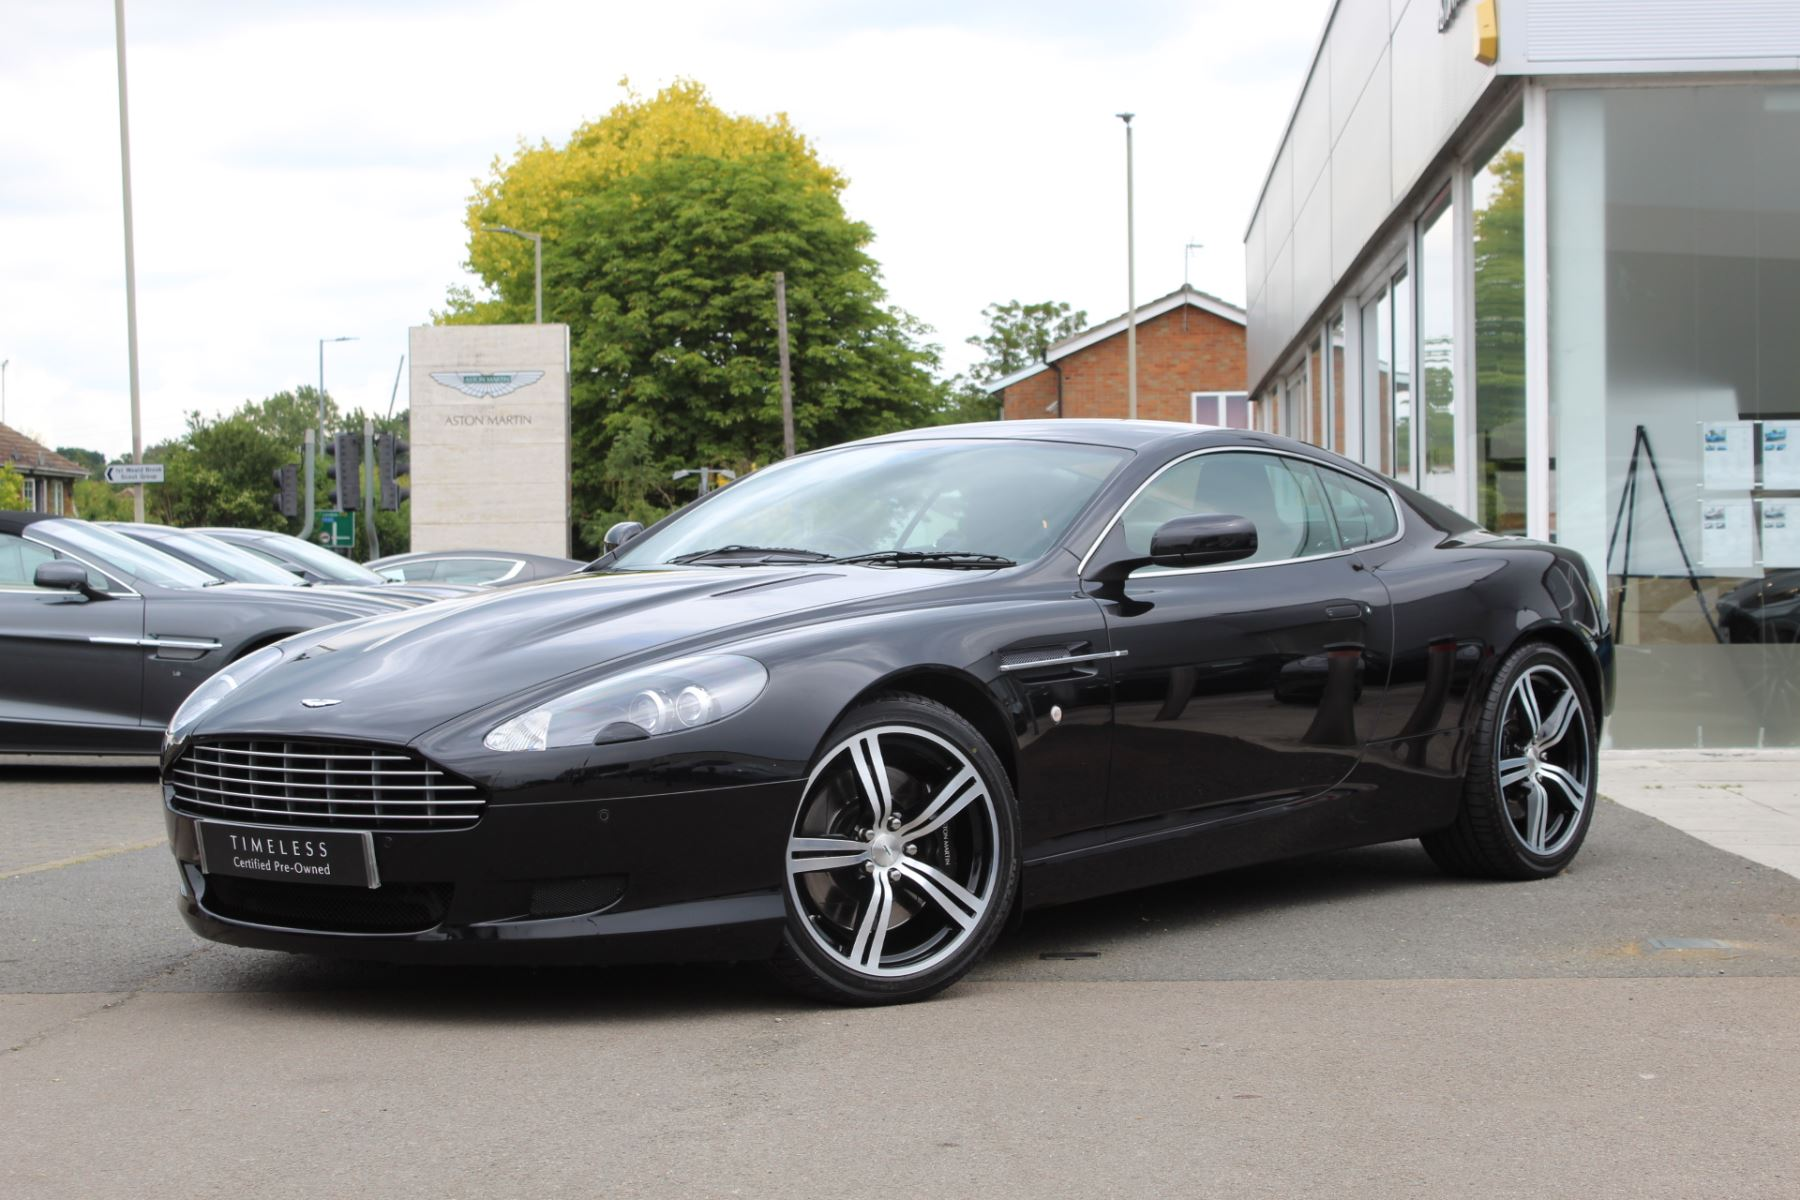 Aston Martin DB9 V12 2dr Touchtronic [470] 5.9 Automatic Coupe (2009 )